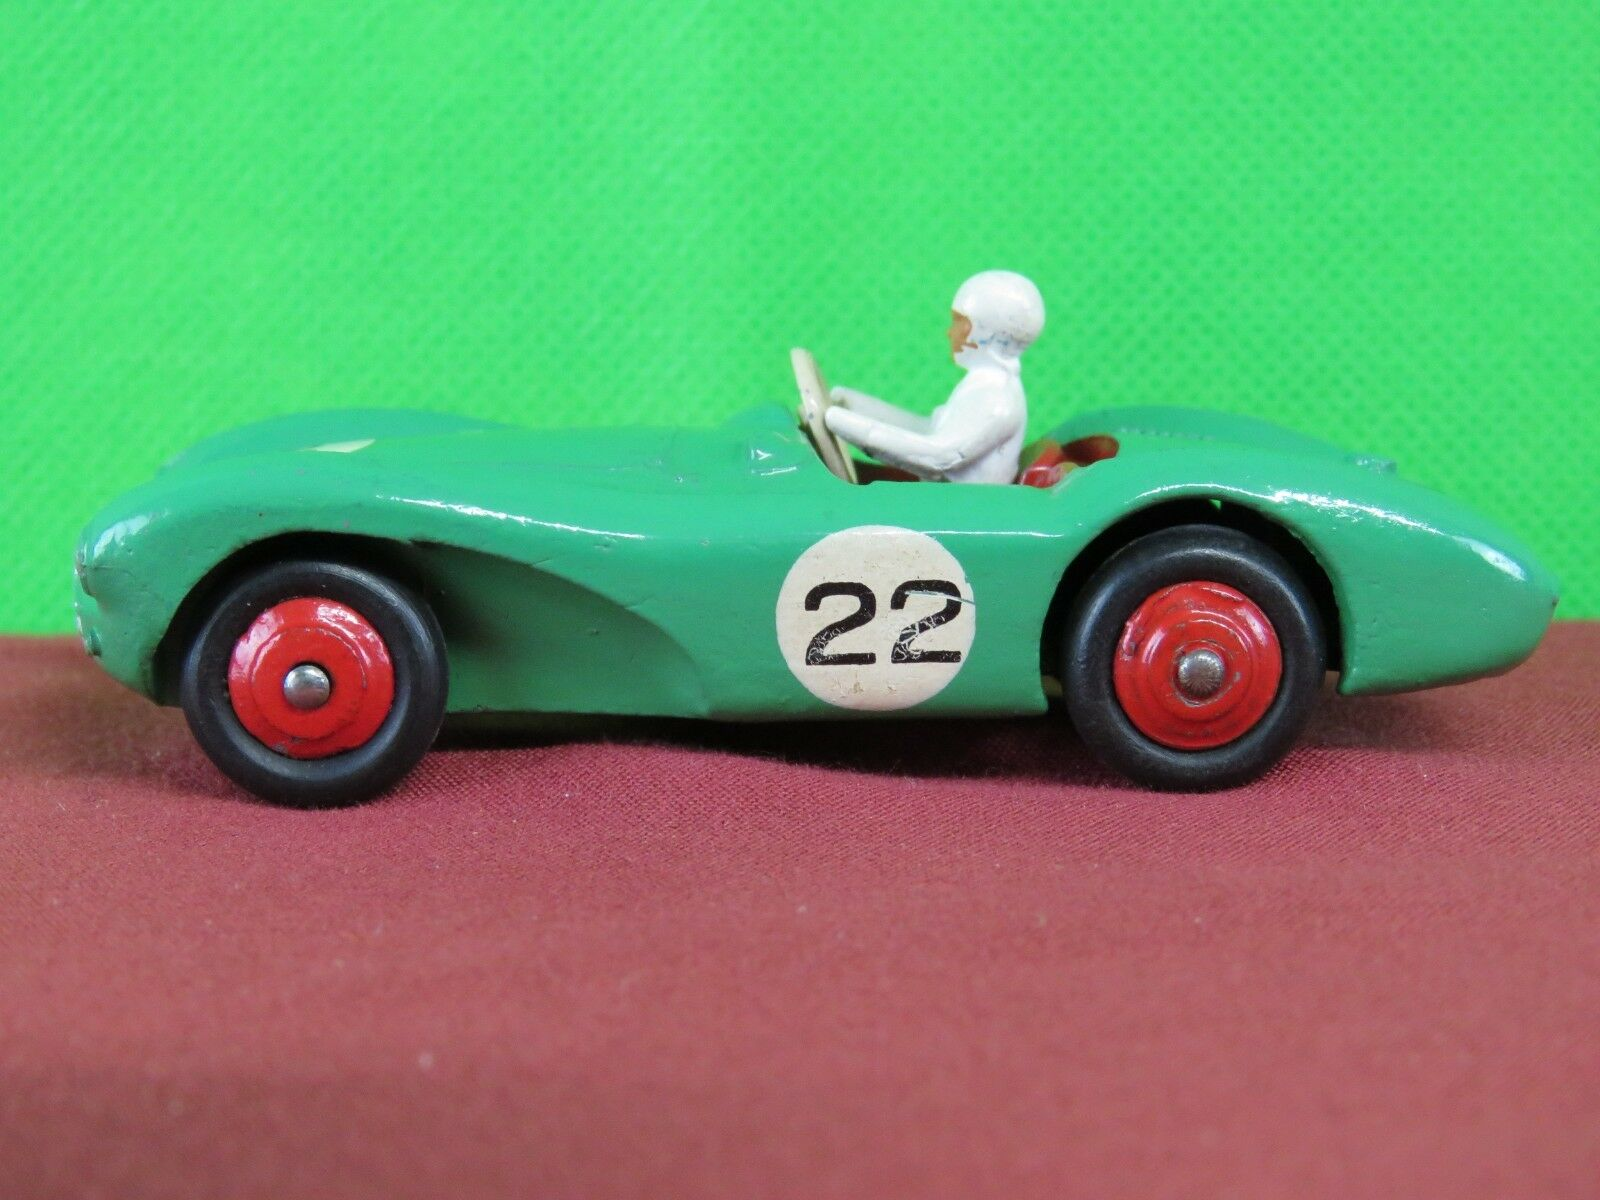 Vintage Loose Meccano LTD Dinky Toys 110 Aston Martin 22 Made in England